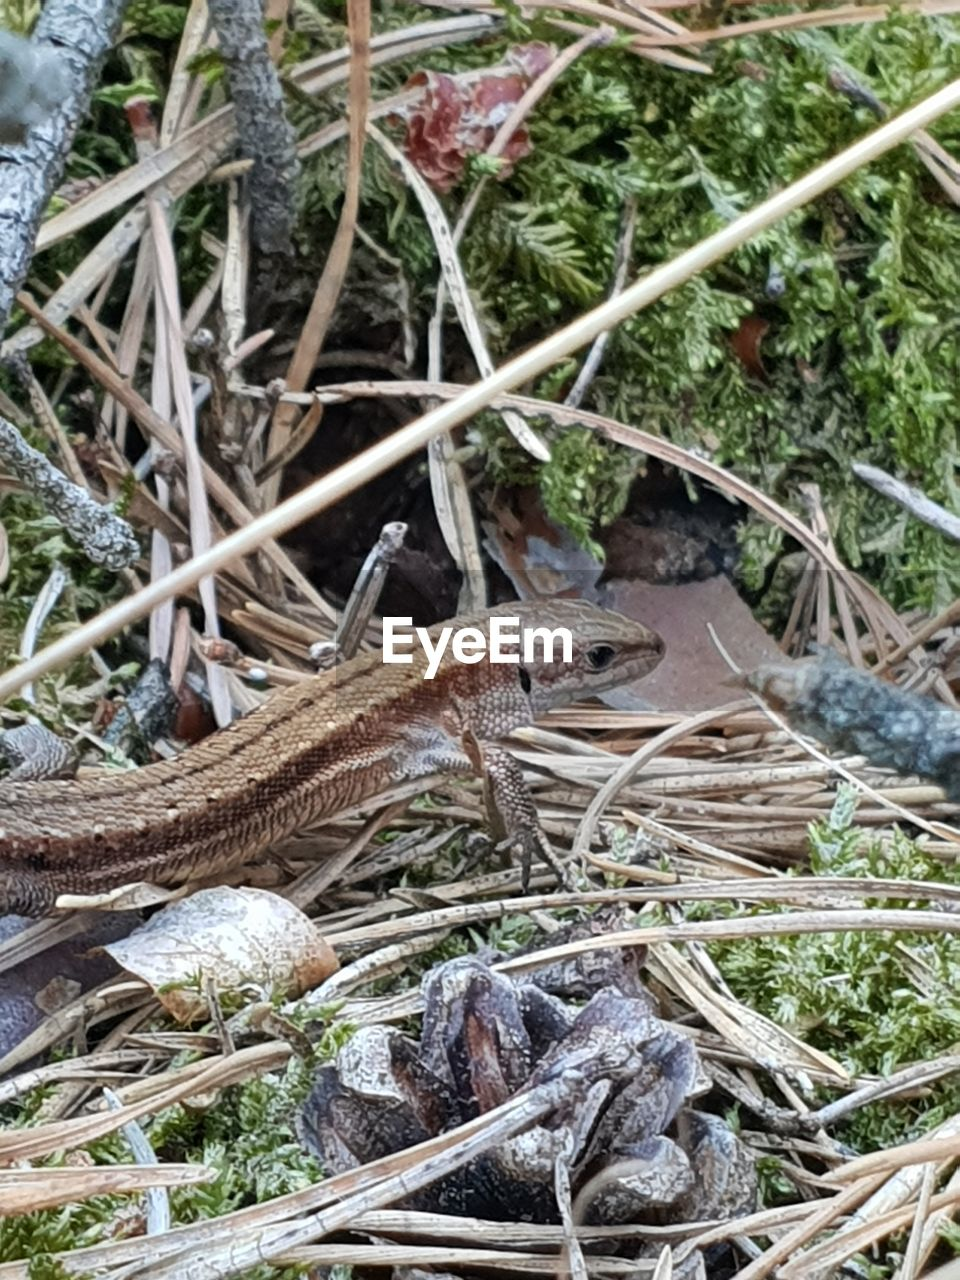 animal wildlife, animal, animal themes, one animal, animals in the wild, vertebrate, reptile, plant, high angle view, nature, no people, day, lizard, grass, close-up, land, focus on foreground, field, outdoors, invertebrate, stick - plant part, animal scale